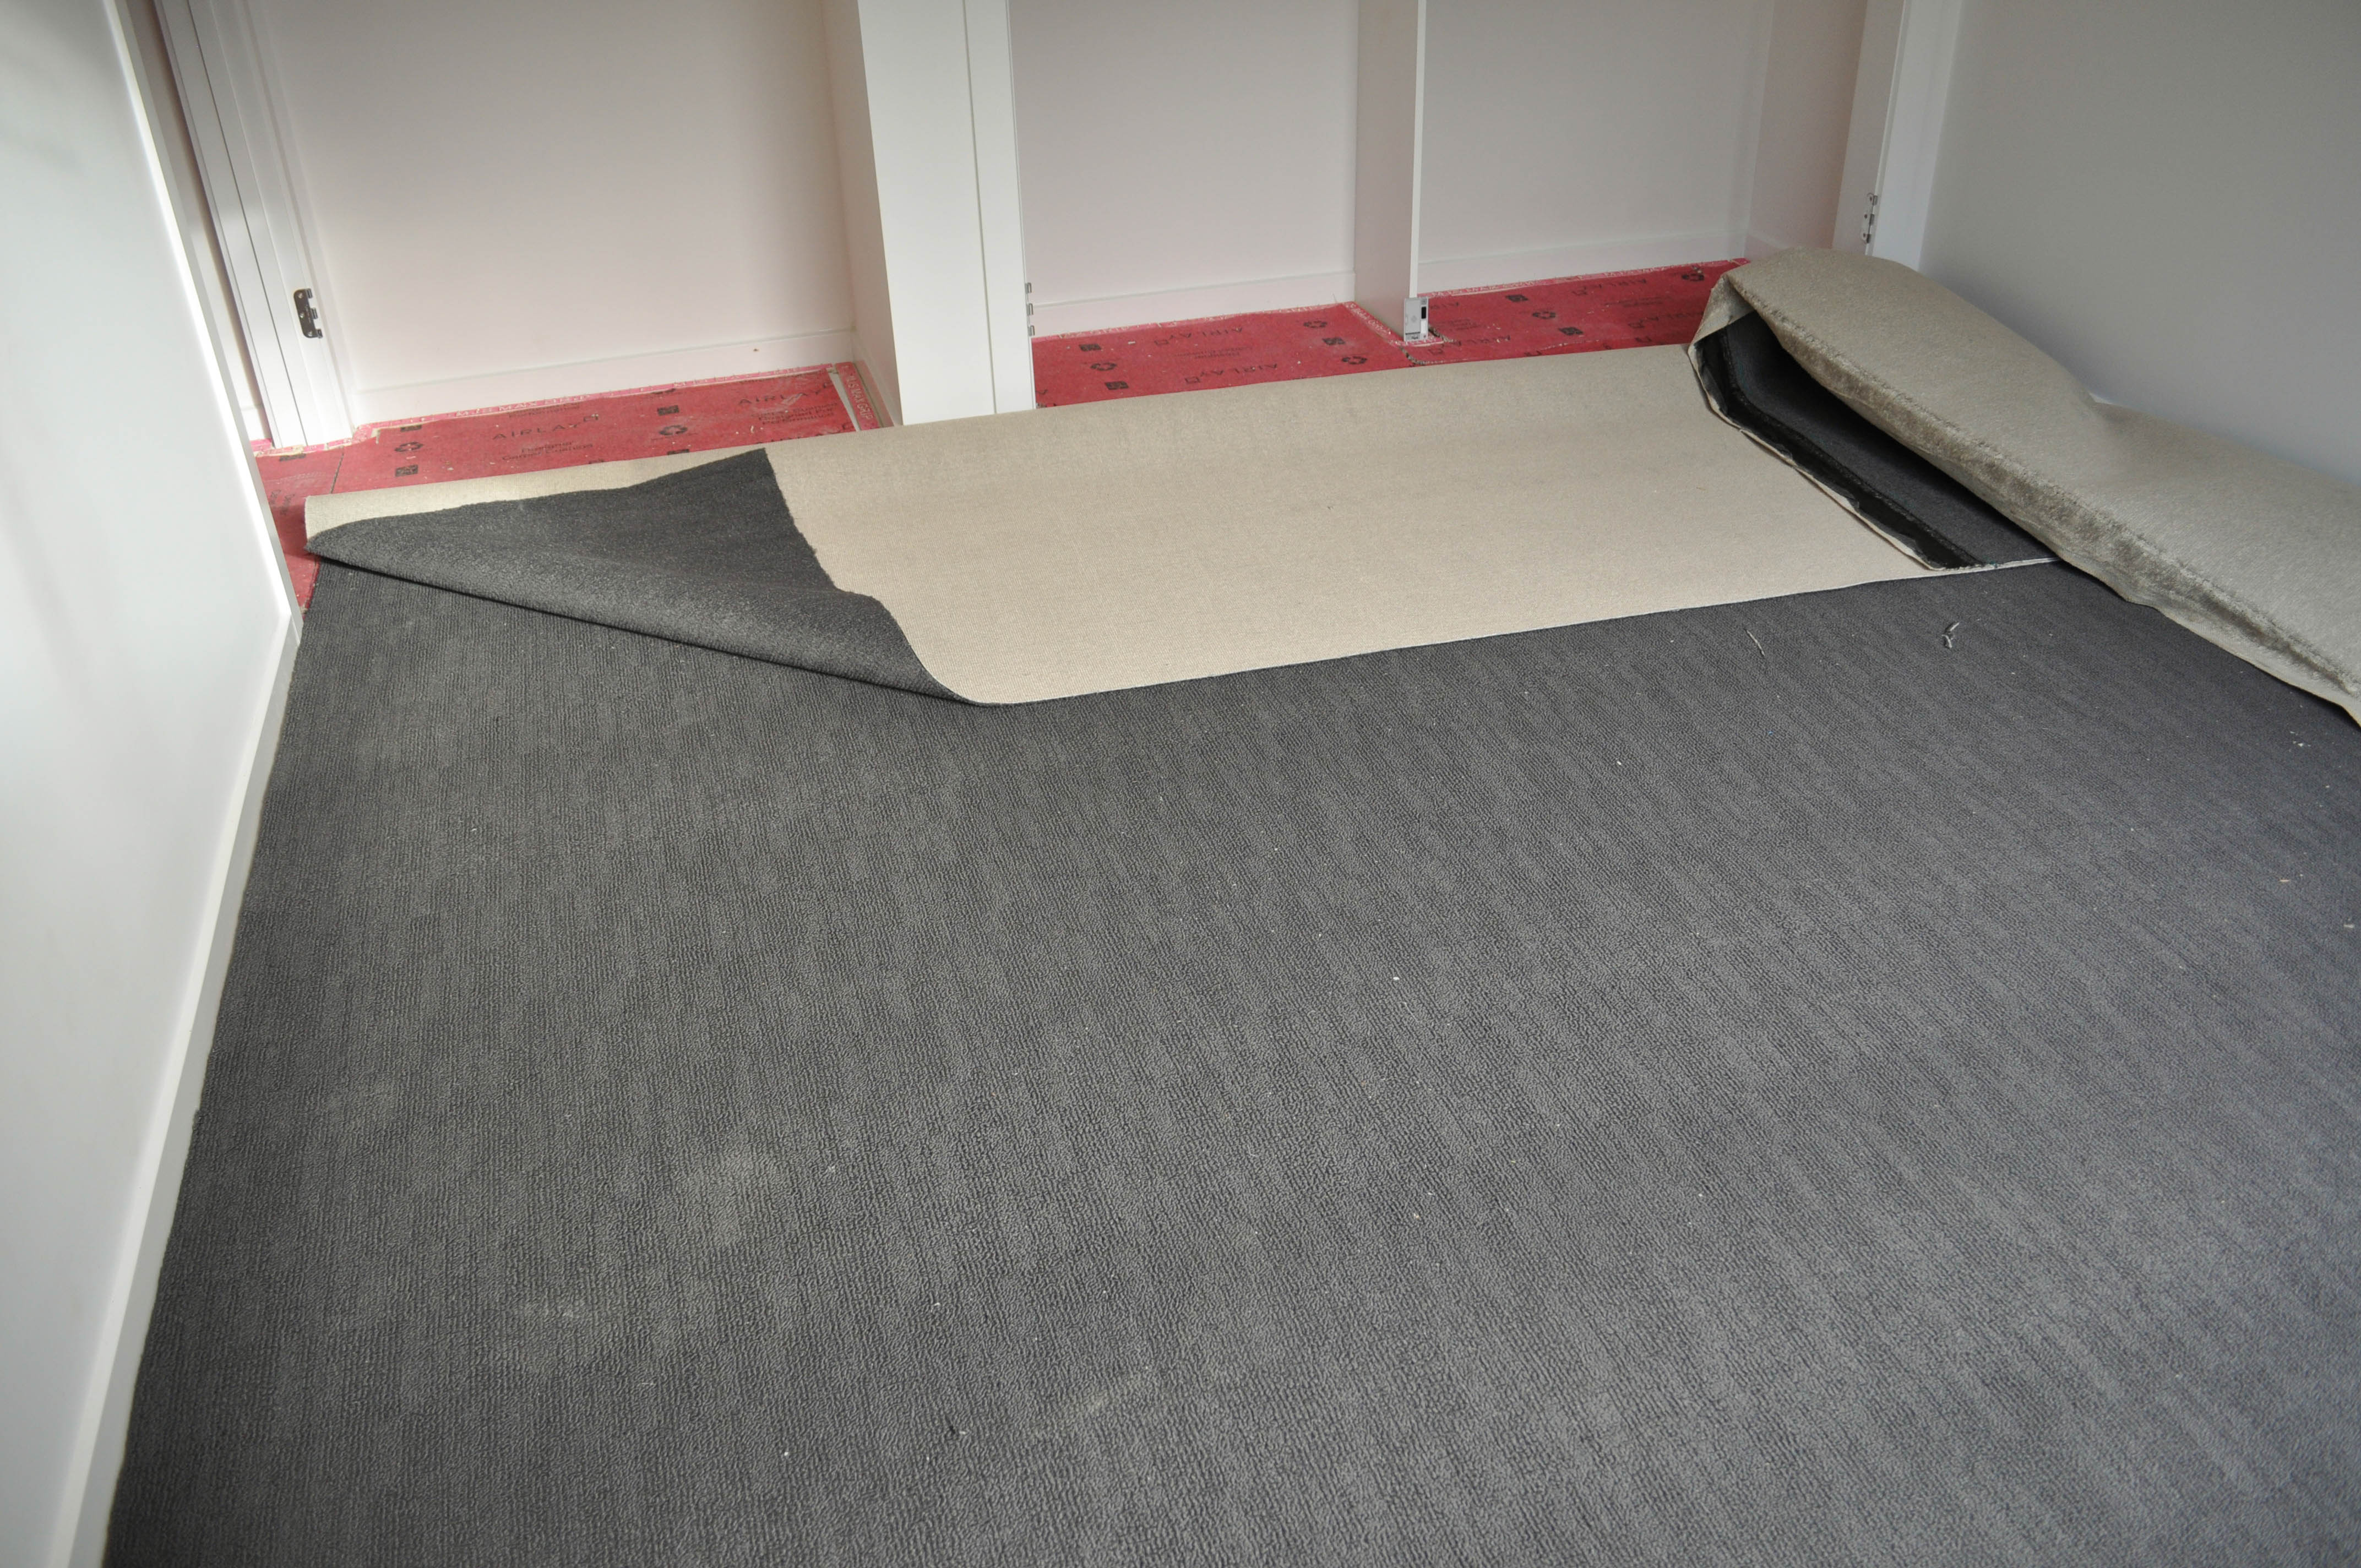 carpet laying process under way by Concord Floors, showing a roll of carpet stretched out, on top of installed red underlay in a home in